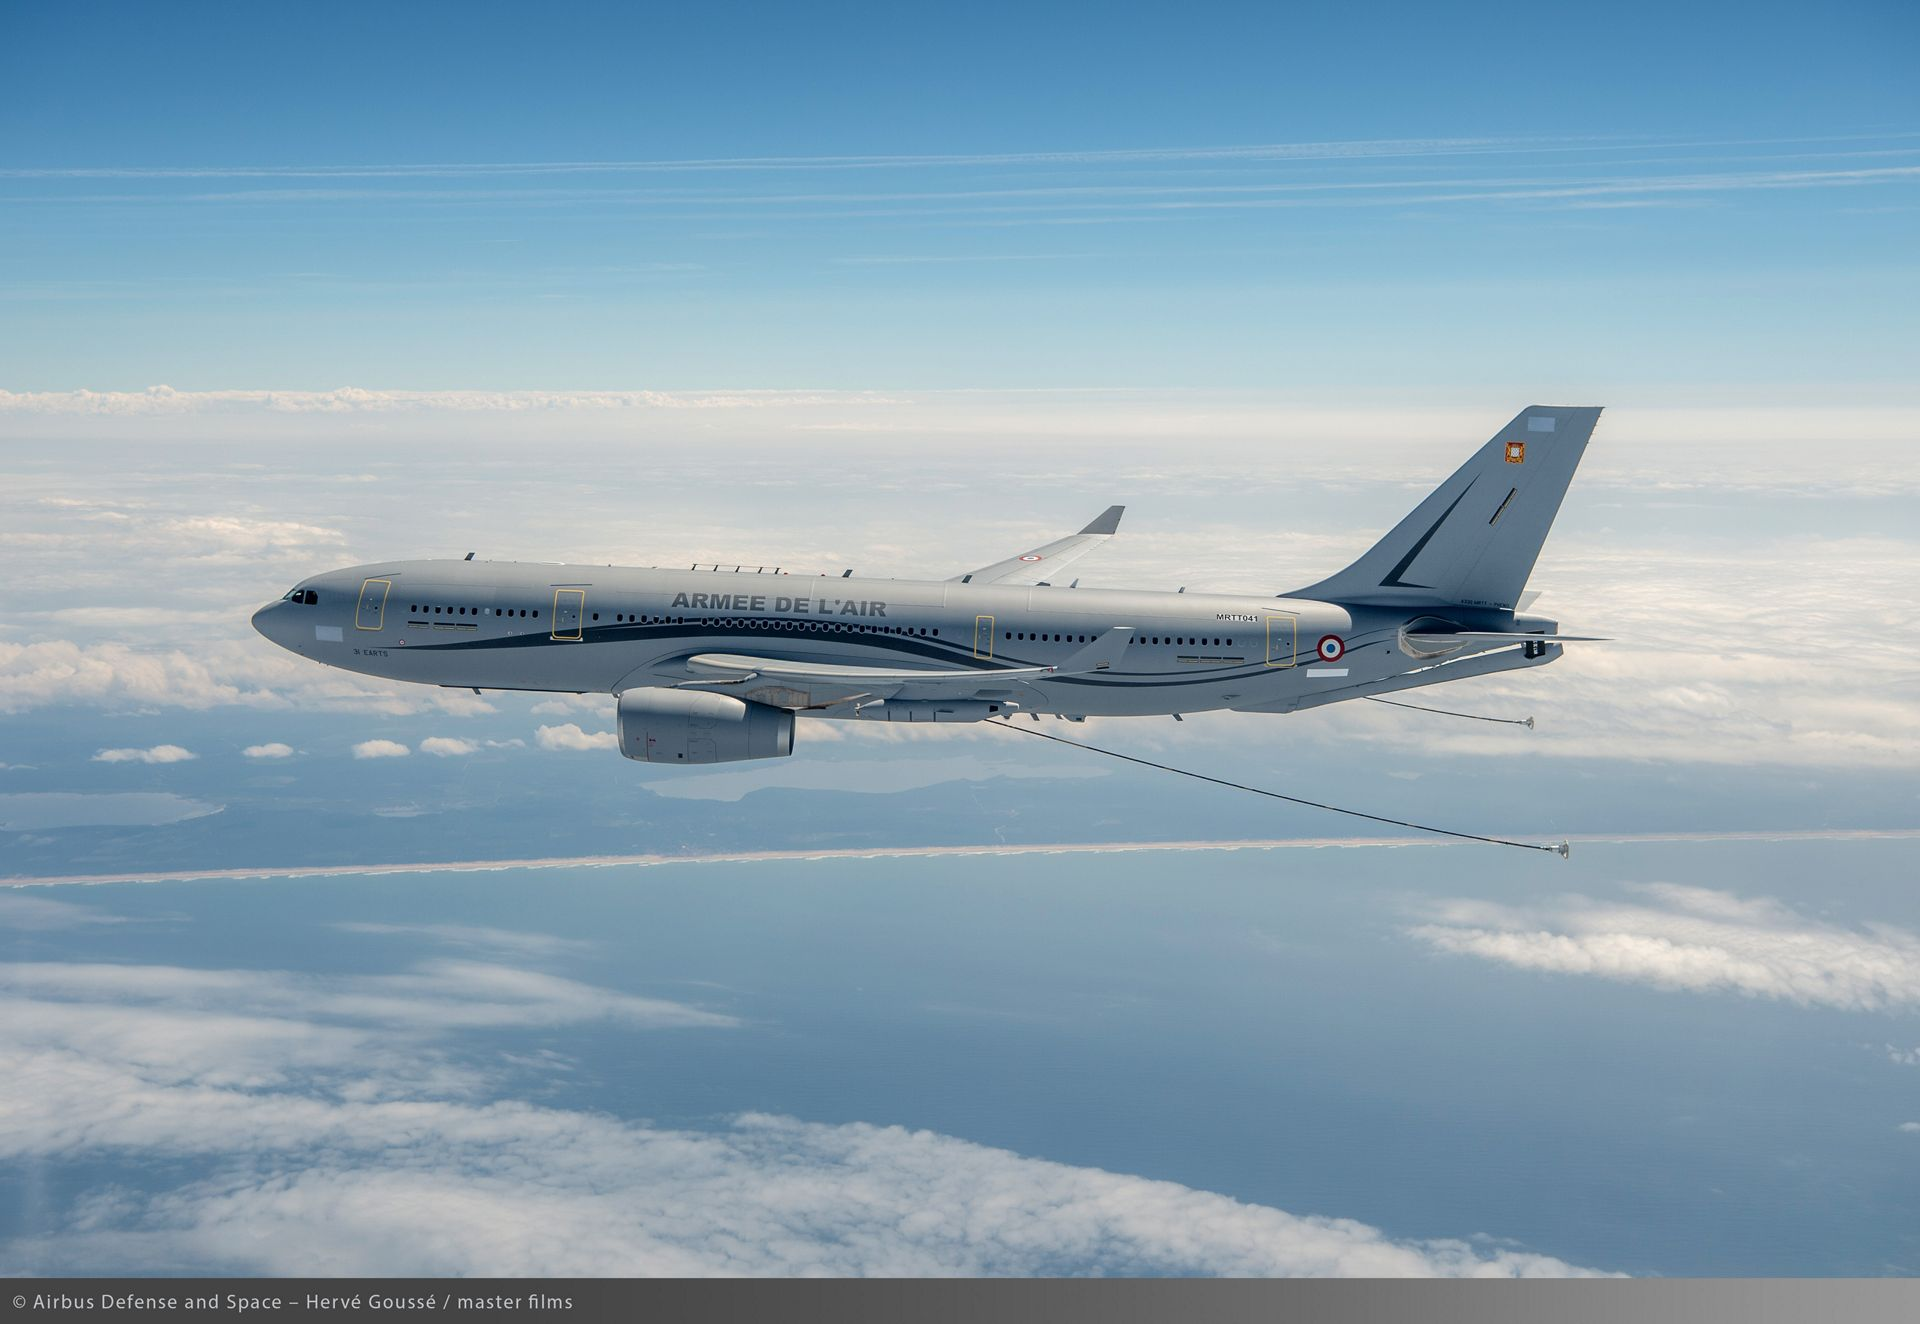 A330 MRTT French Air Force In Flight